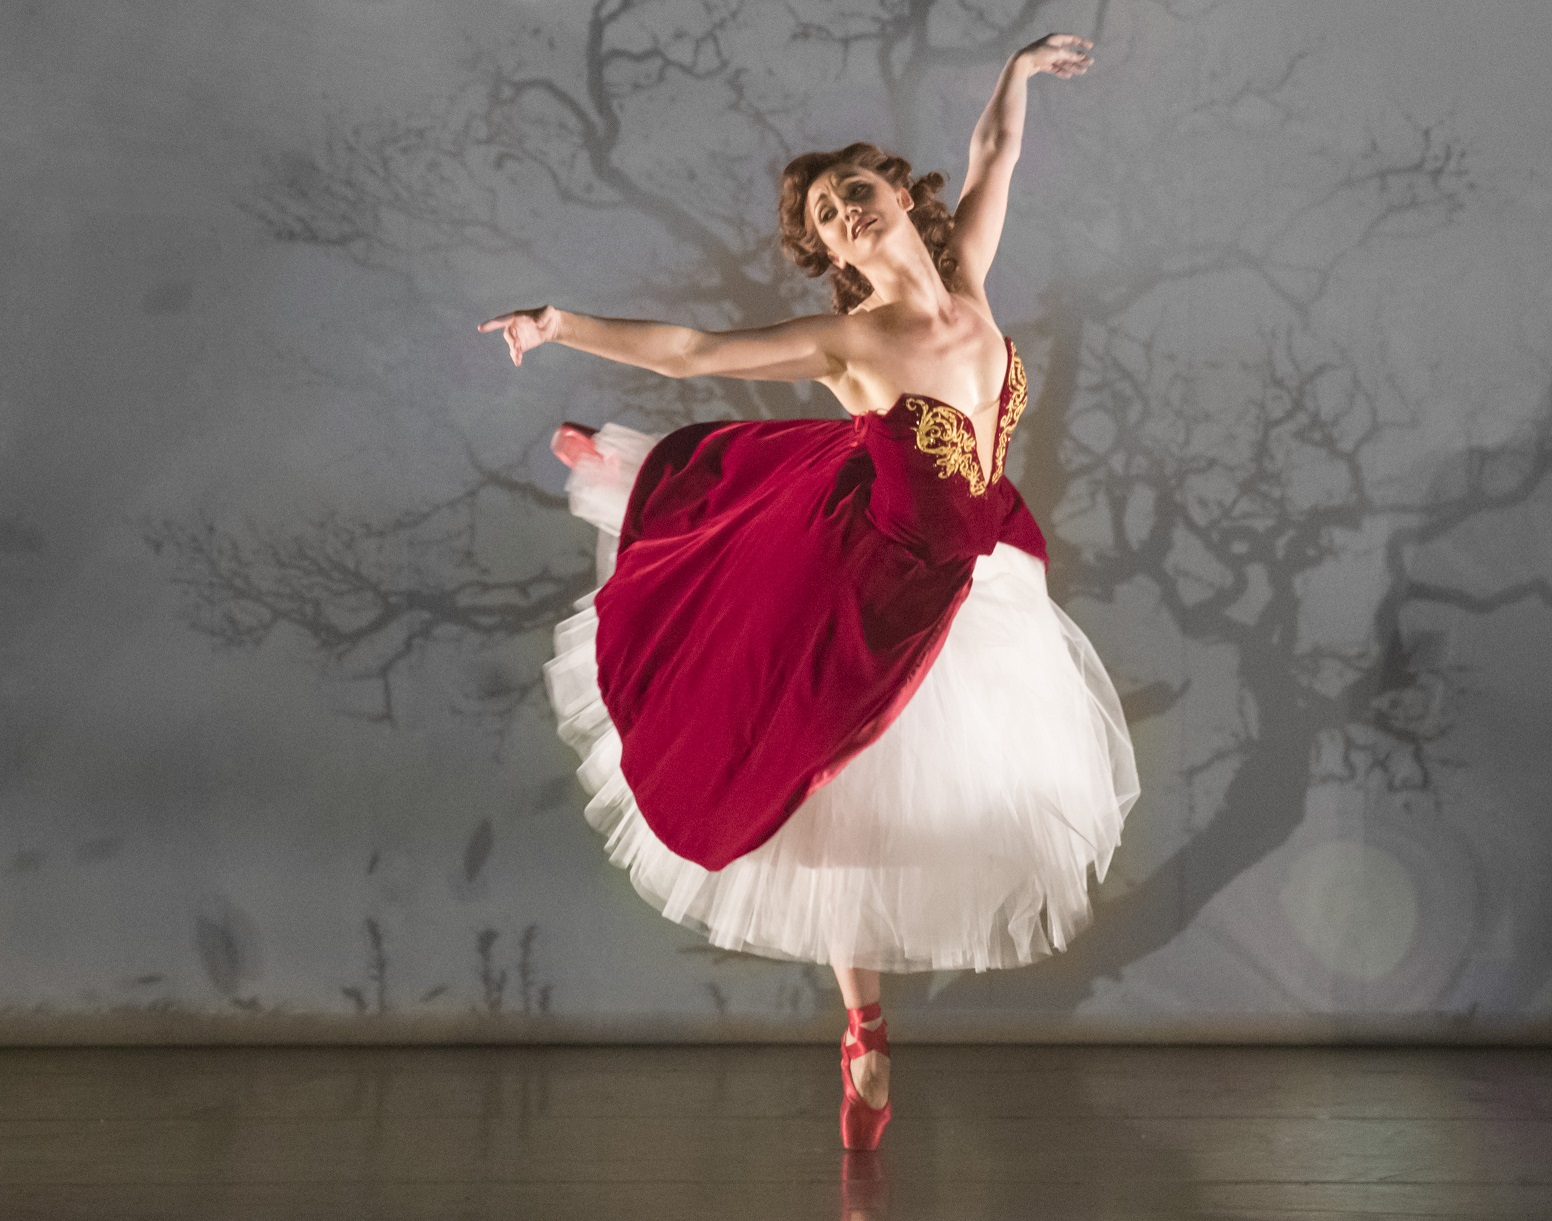 Buy Tickets For The Red Shoes Milton Keynes